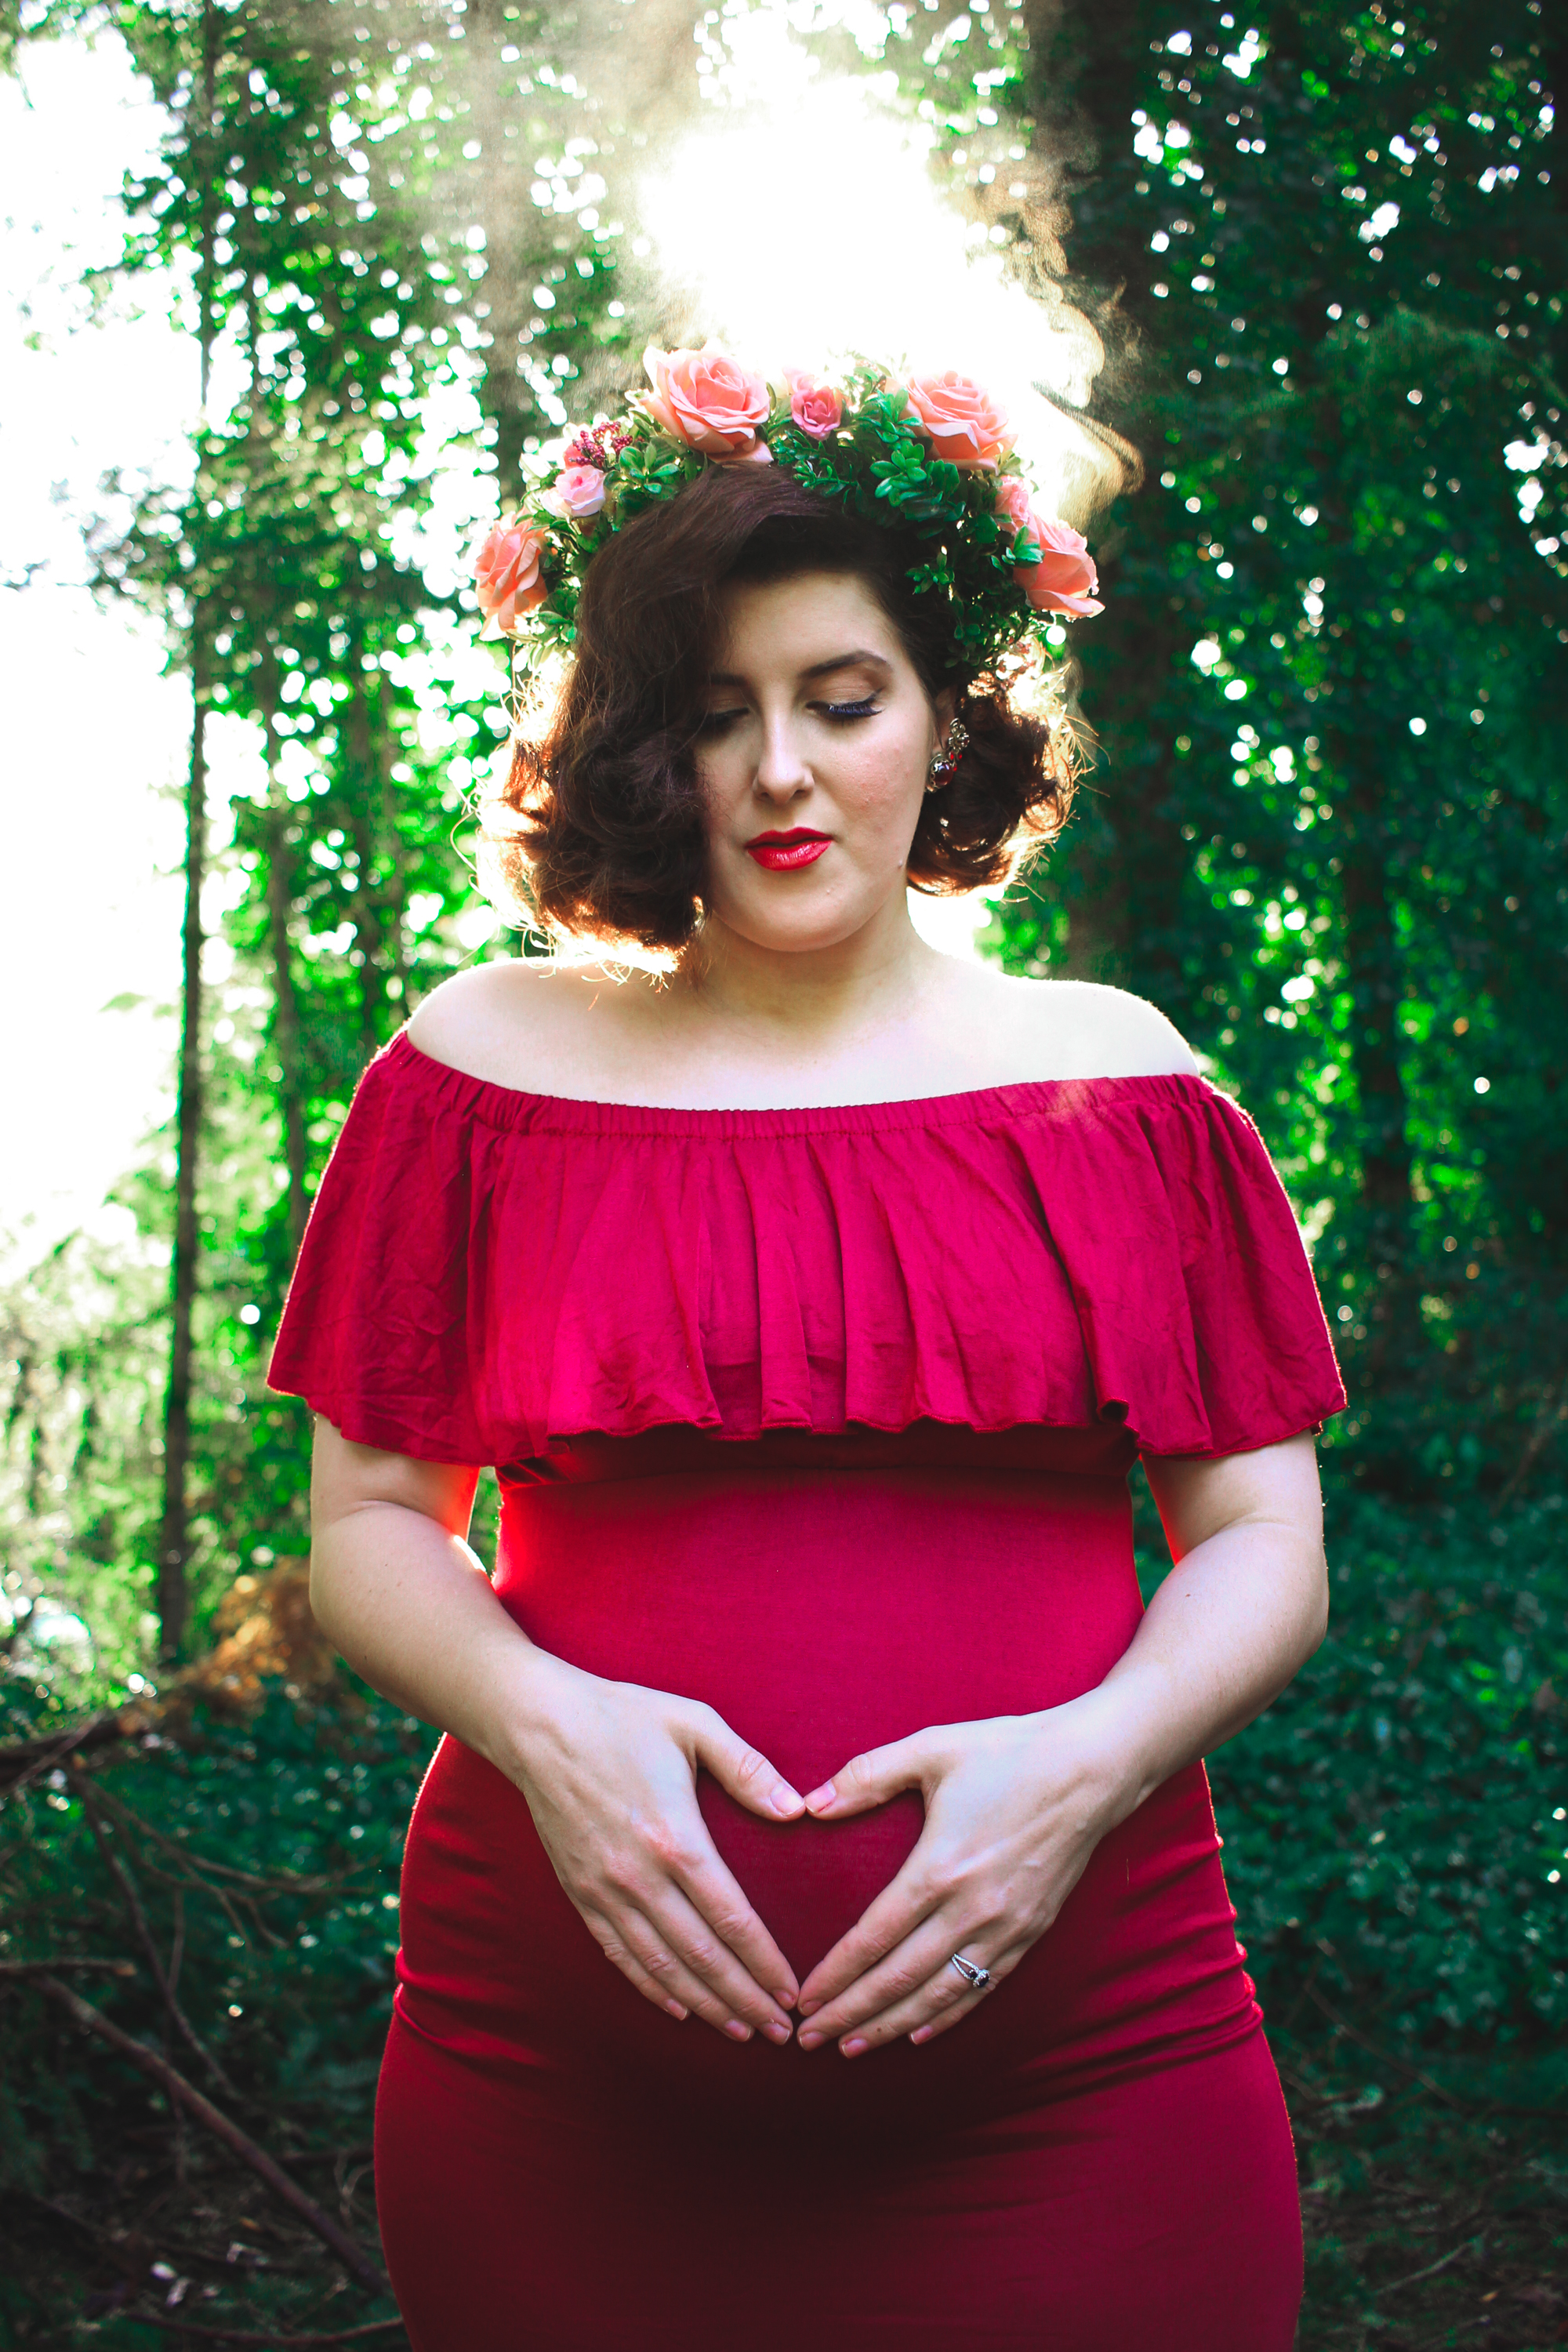 Vintage Maternity Photos | eyreeffect.com